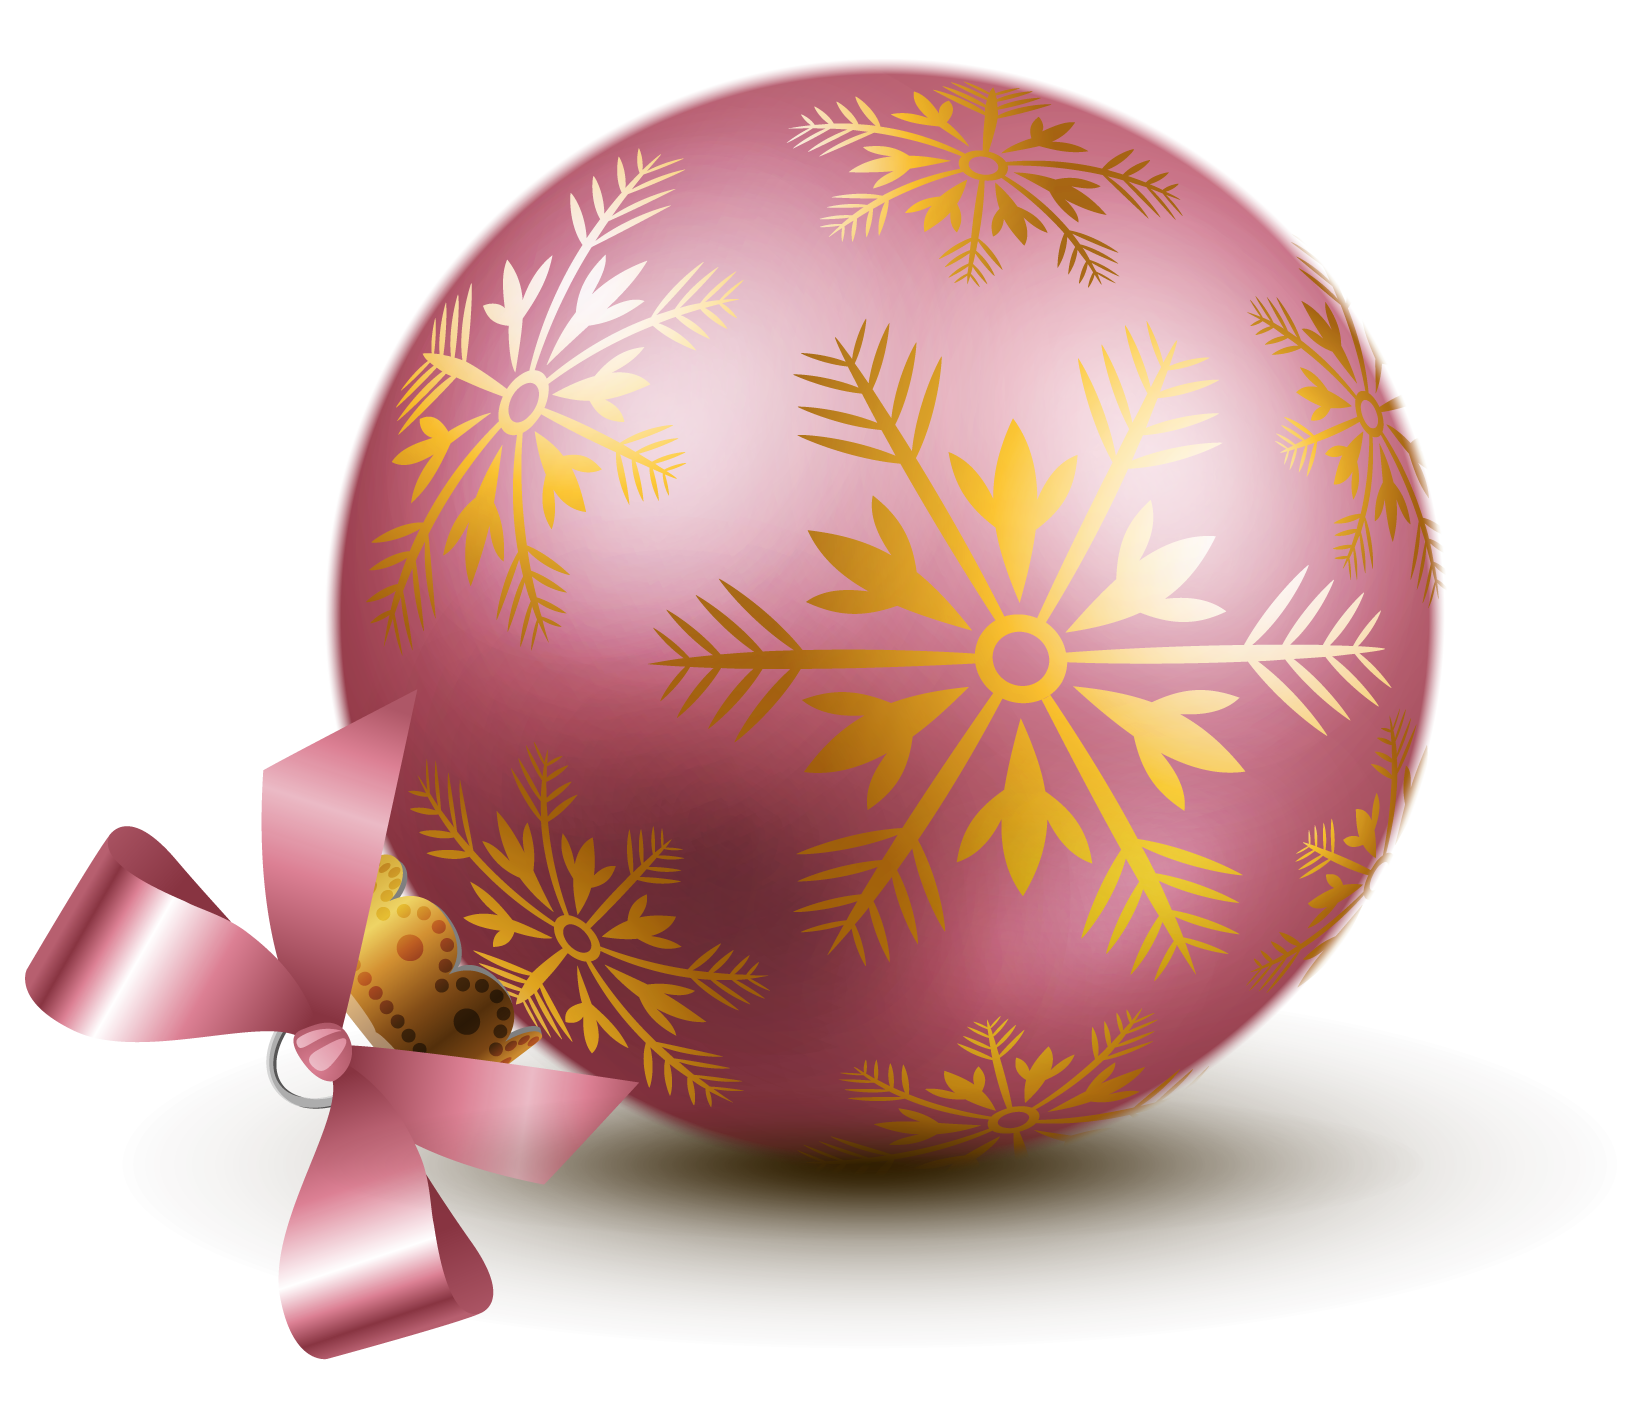 Decorated Christmas Balls Transparent Pink Christmas Ball Ornaments Clipart  Клипарты